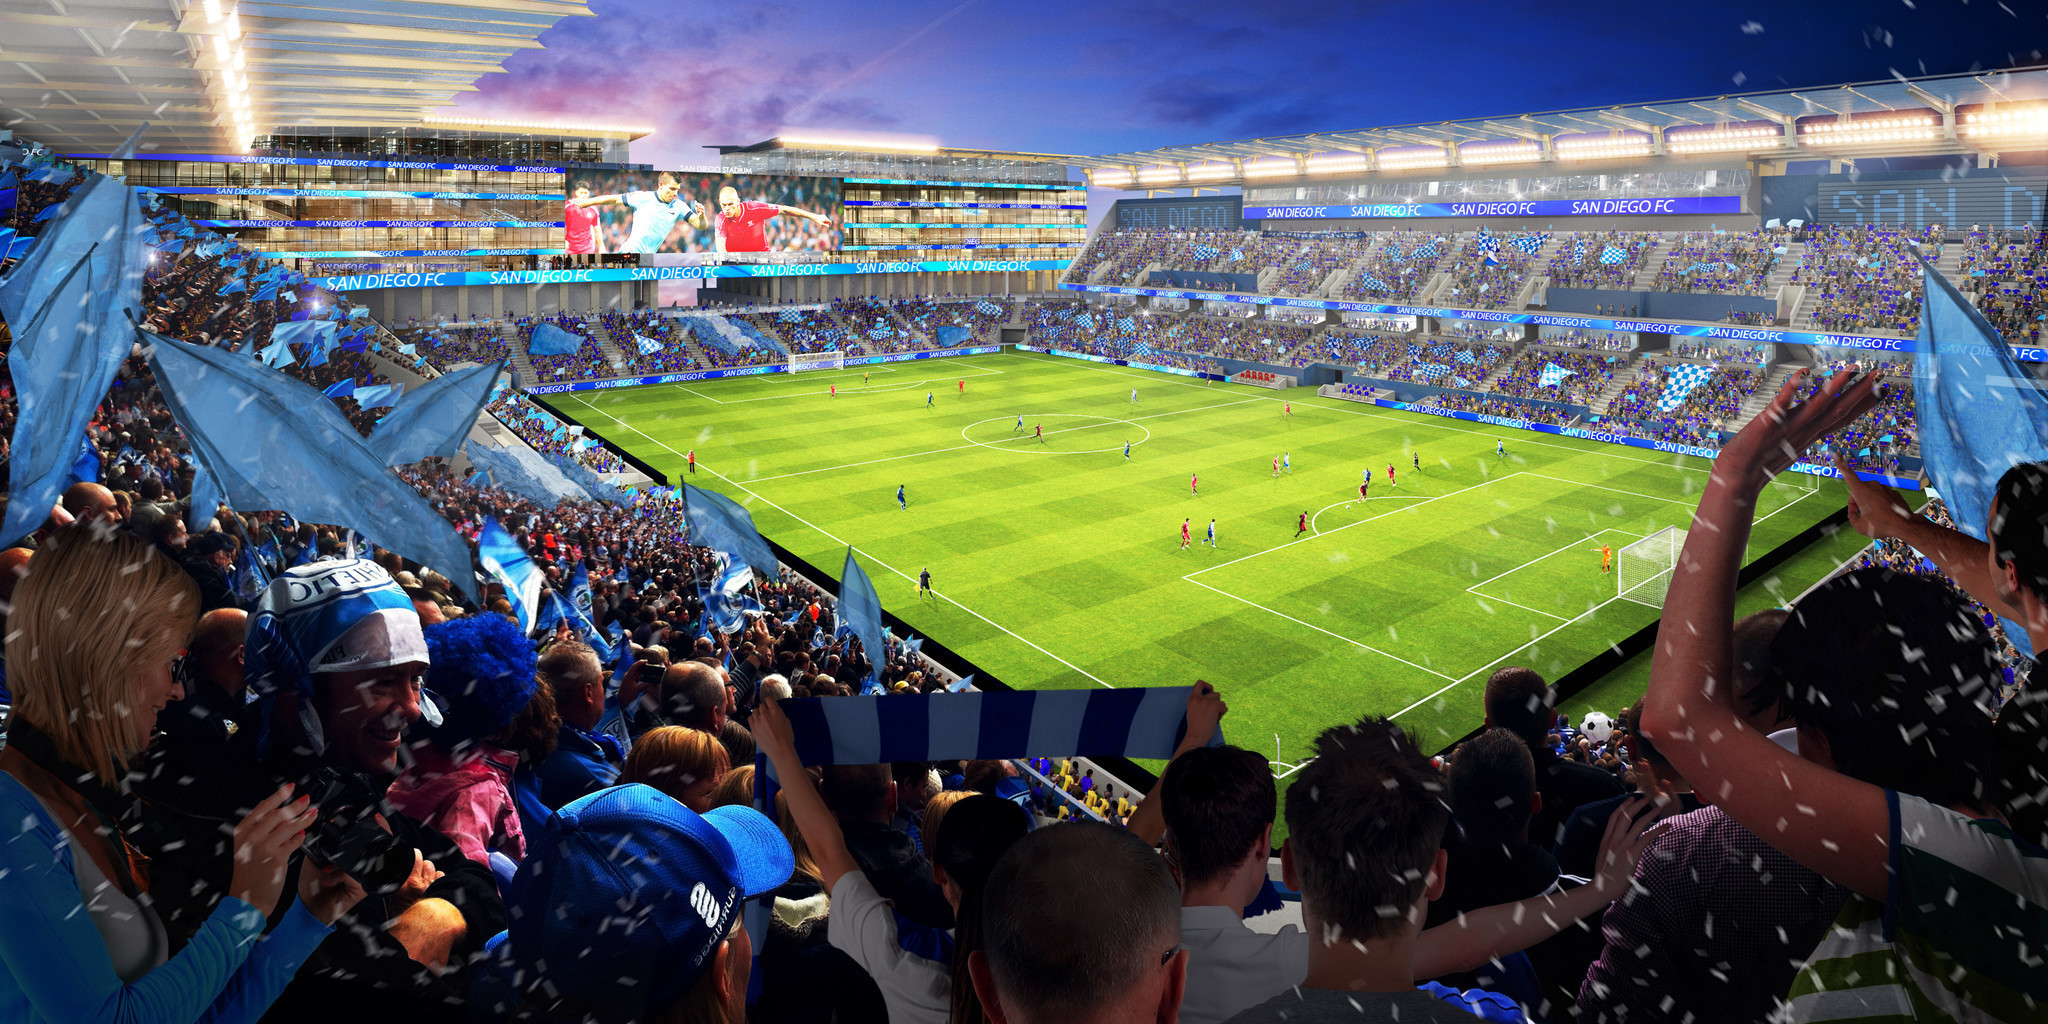 1b Soccer Redevelopment Initiative Announced For Q Site